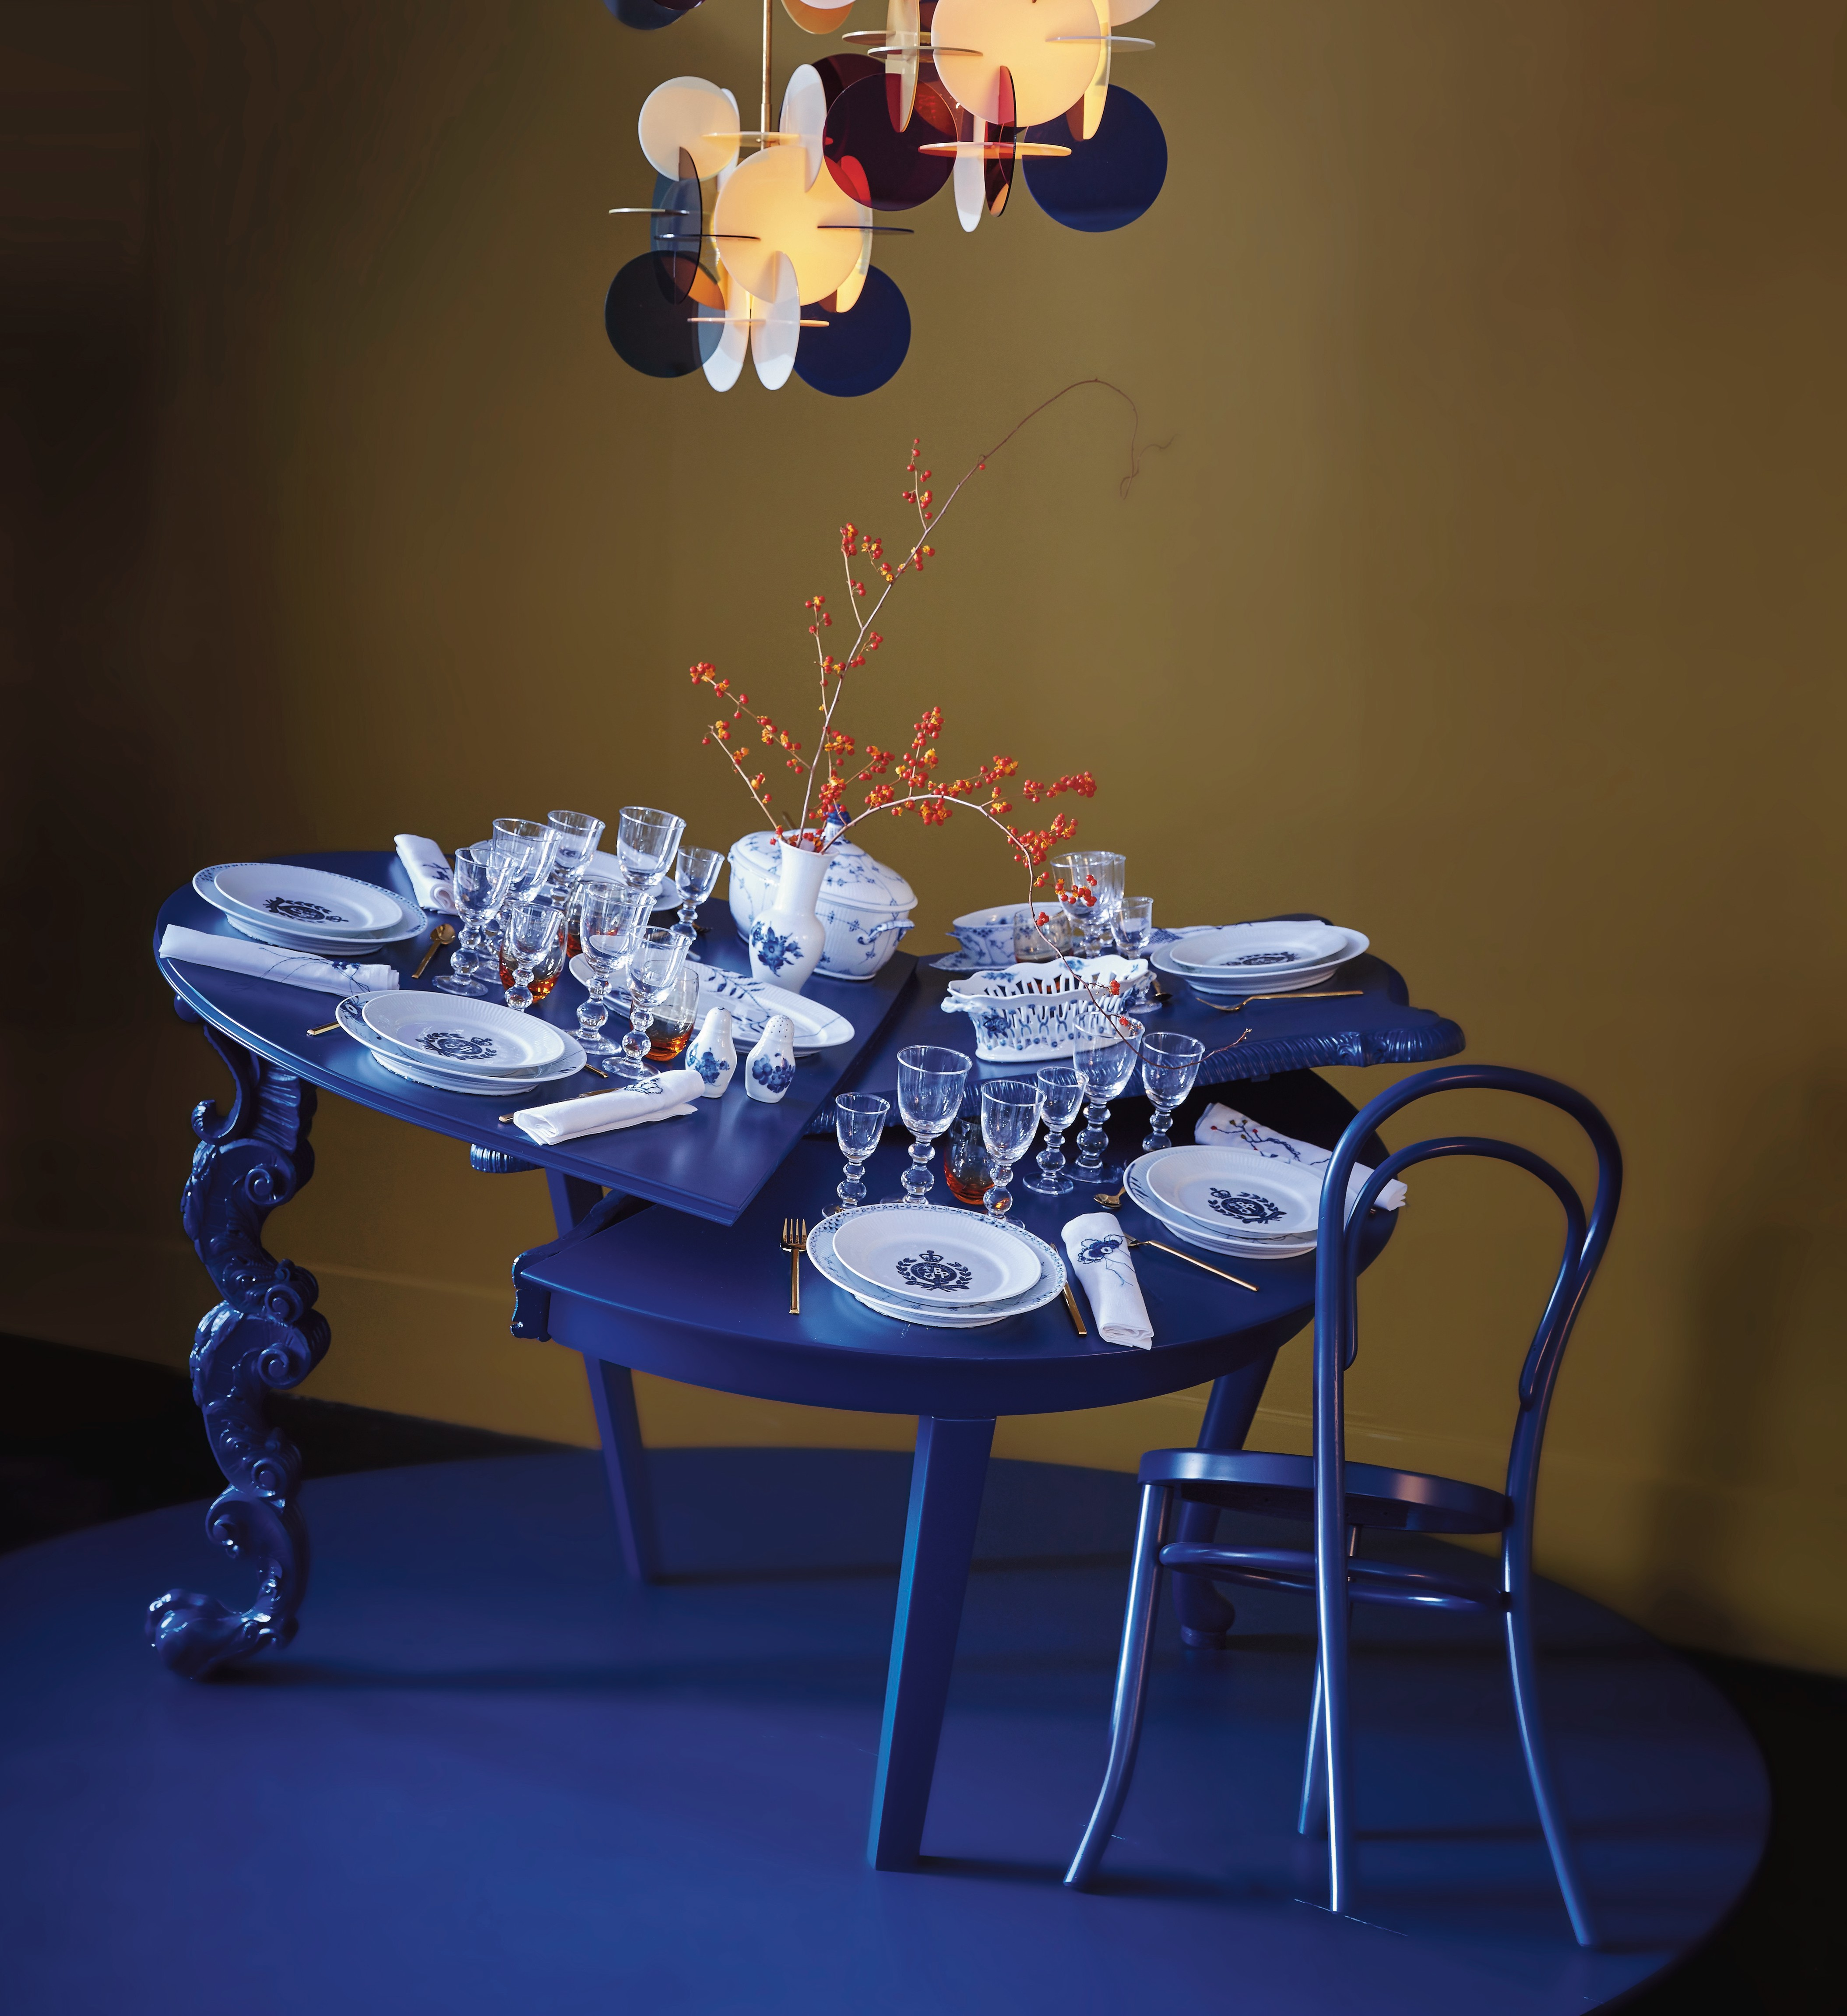 fashionable Christmas - a cobalt blue Christmas table by Baum & Pferdgarten is deconstructed into three tilted sections and set with Blue Fluted Plain and Half Lace china - Royal Copenhagen via Atticmag